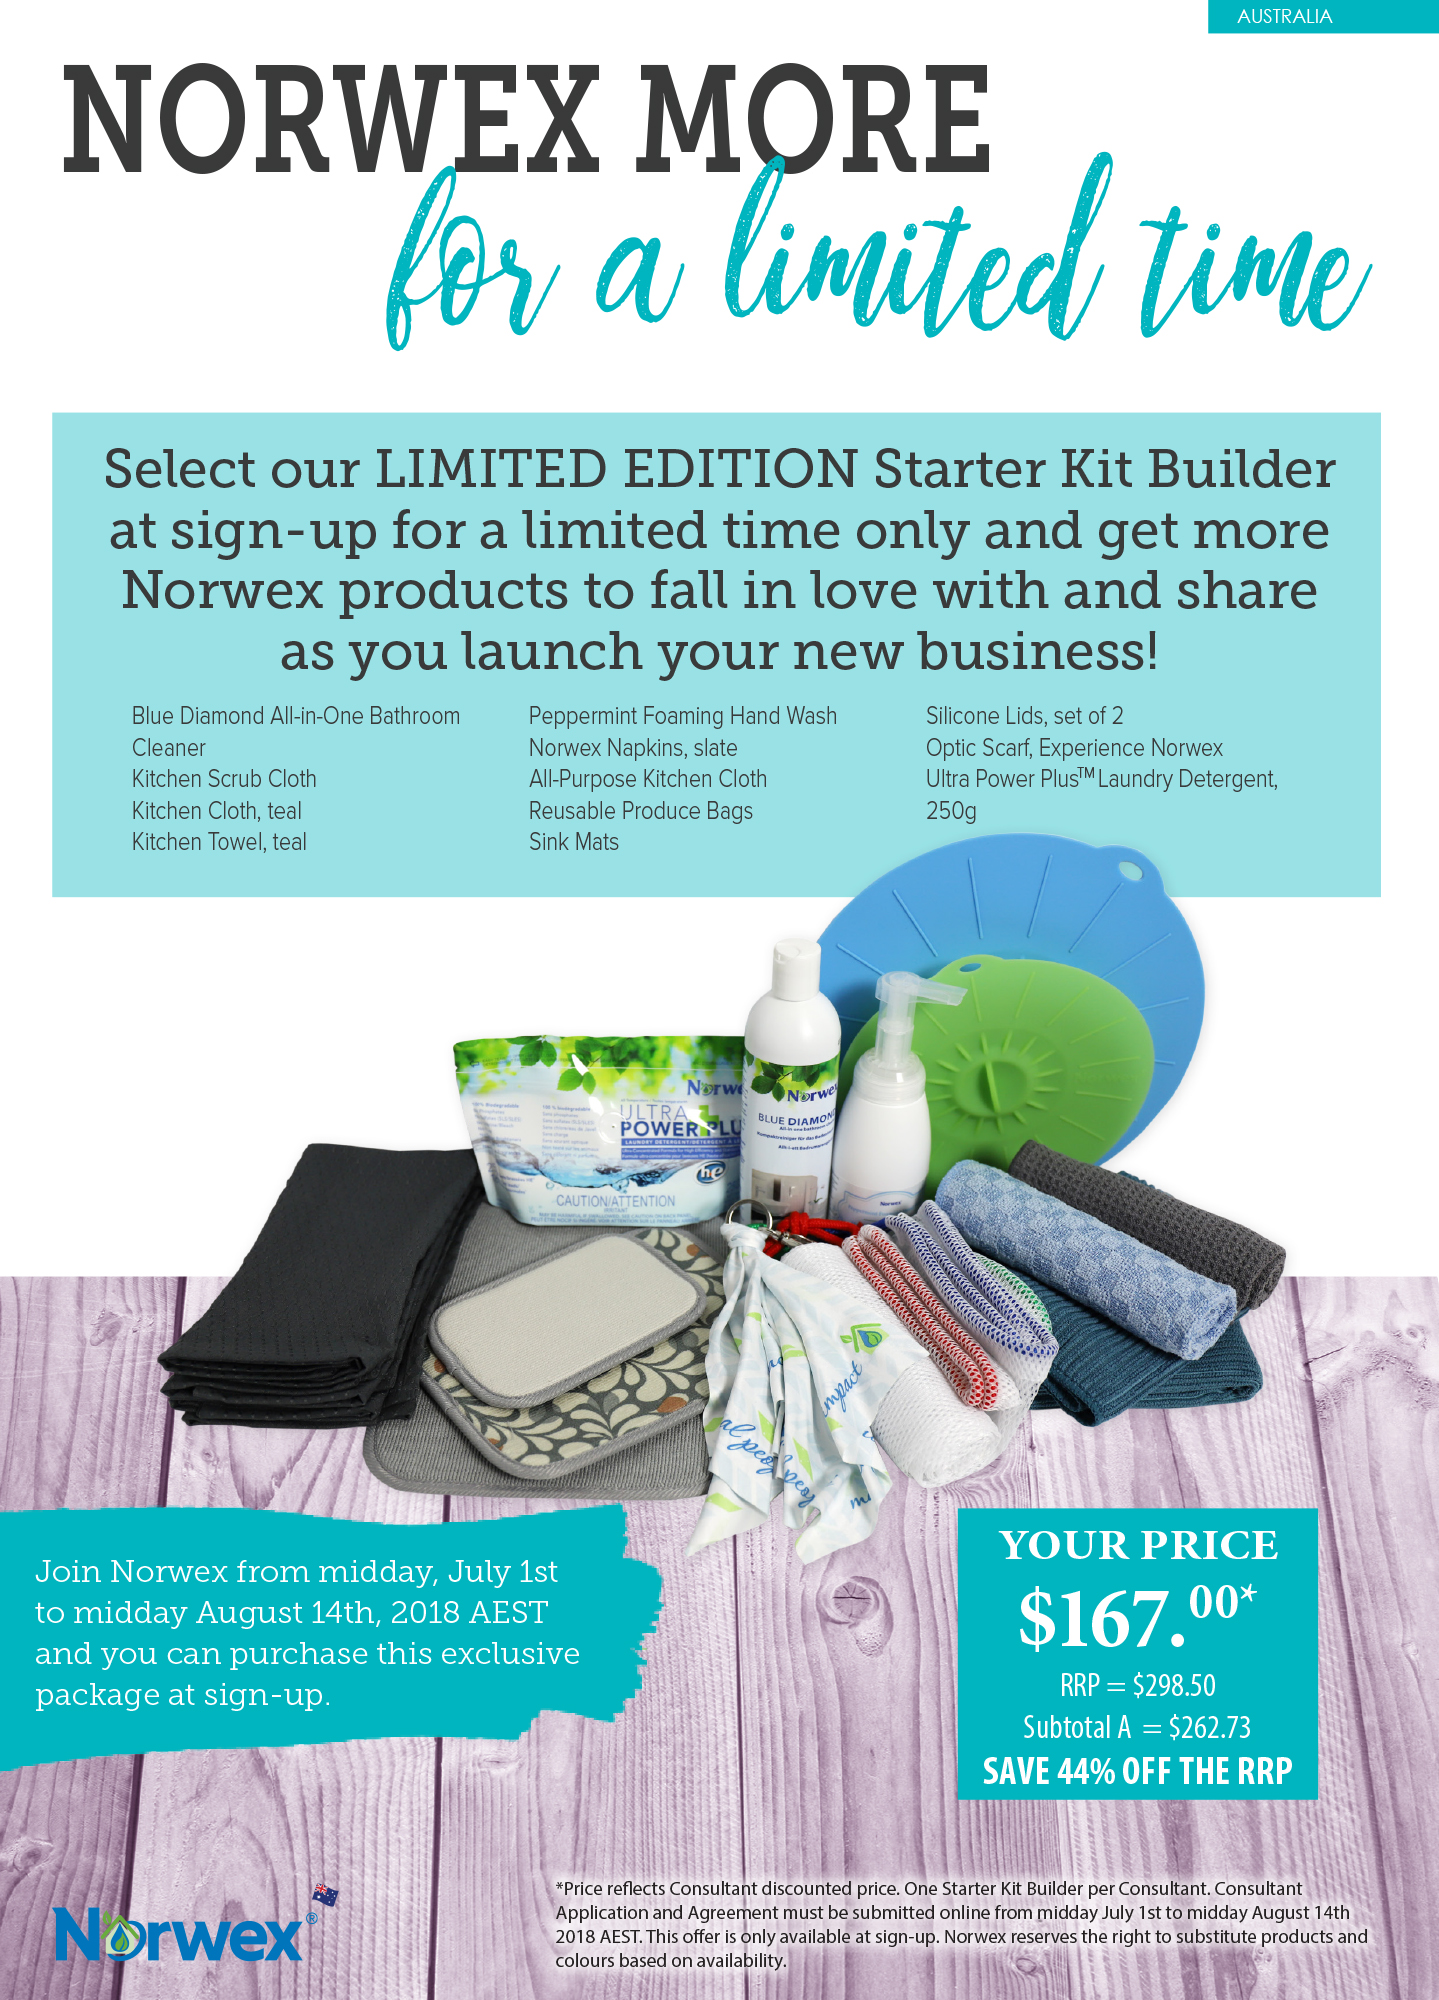 Join Norwex For Free In Australia And New Zealand In July And August